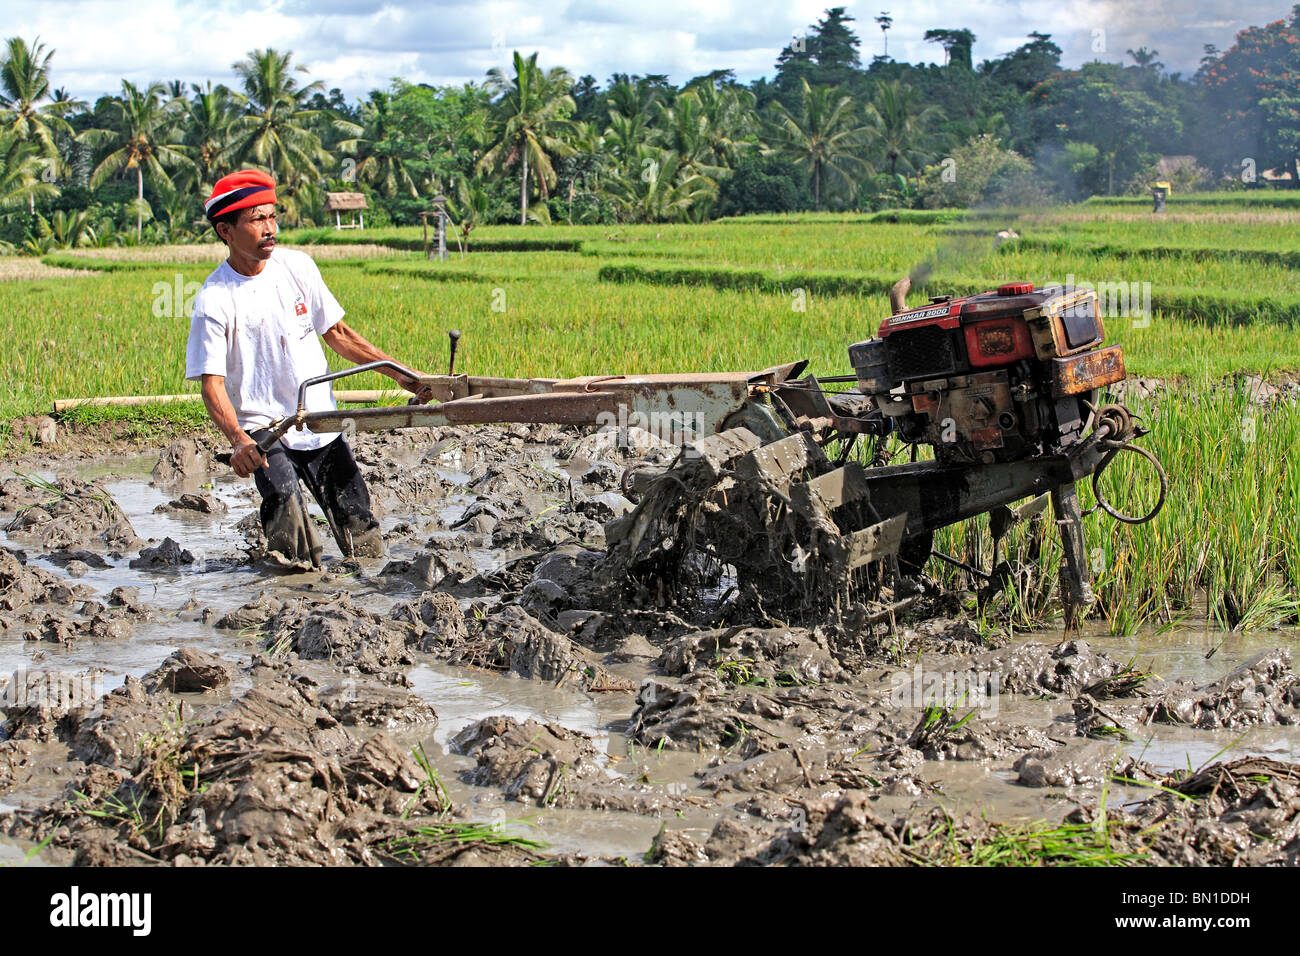 a-farmer-ploughing-a-flooded-rice-paddy-near-ubud-bali-indonesia-BN1DDH.jpg